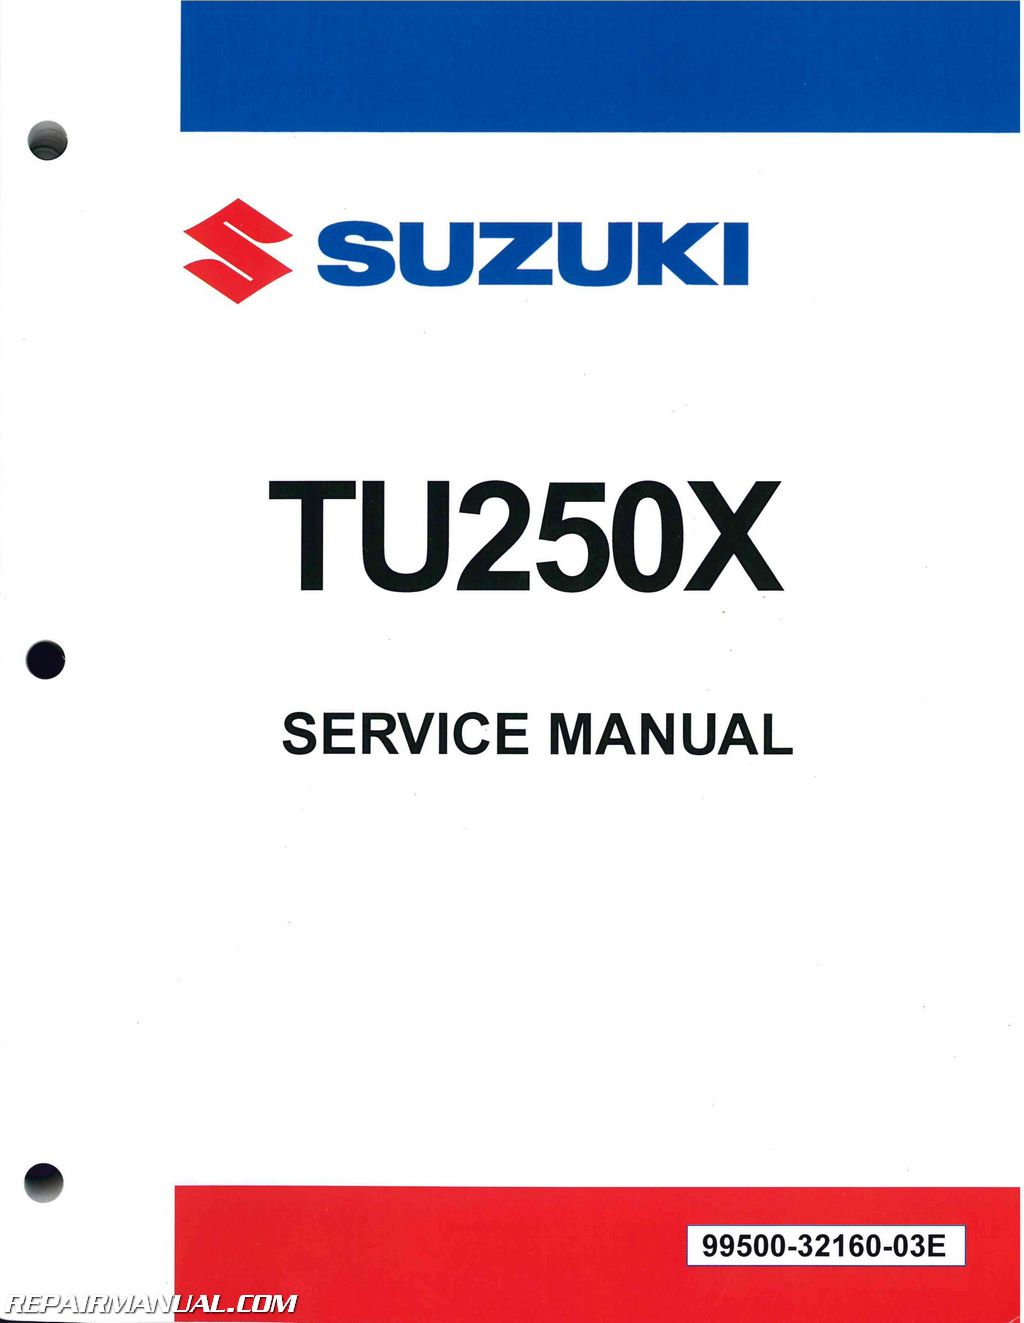 2009 2017 suzuki tu250x motorcycle service manual rh repairmanual com suzuki owners manual lt-a450x suzuki owners manual df 250